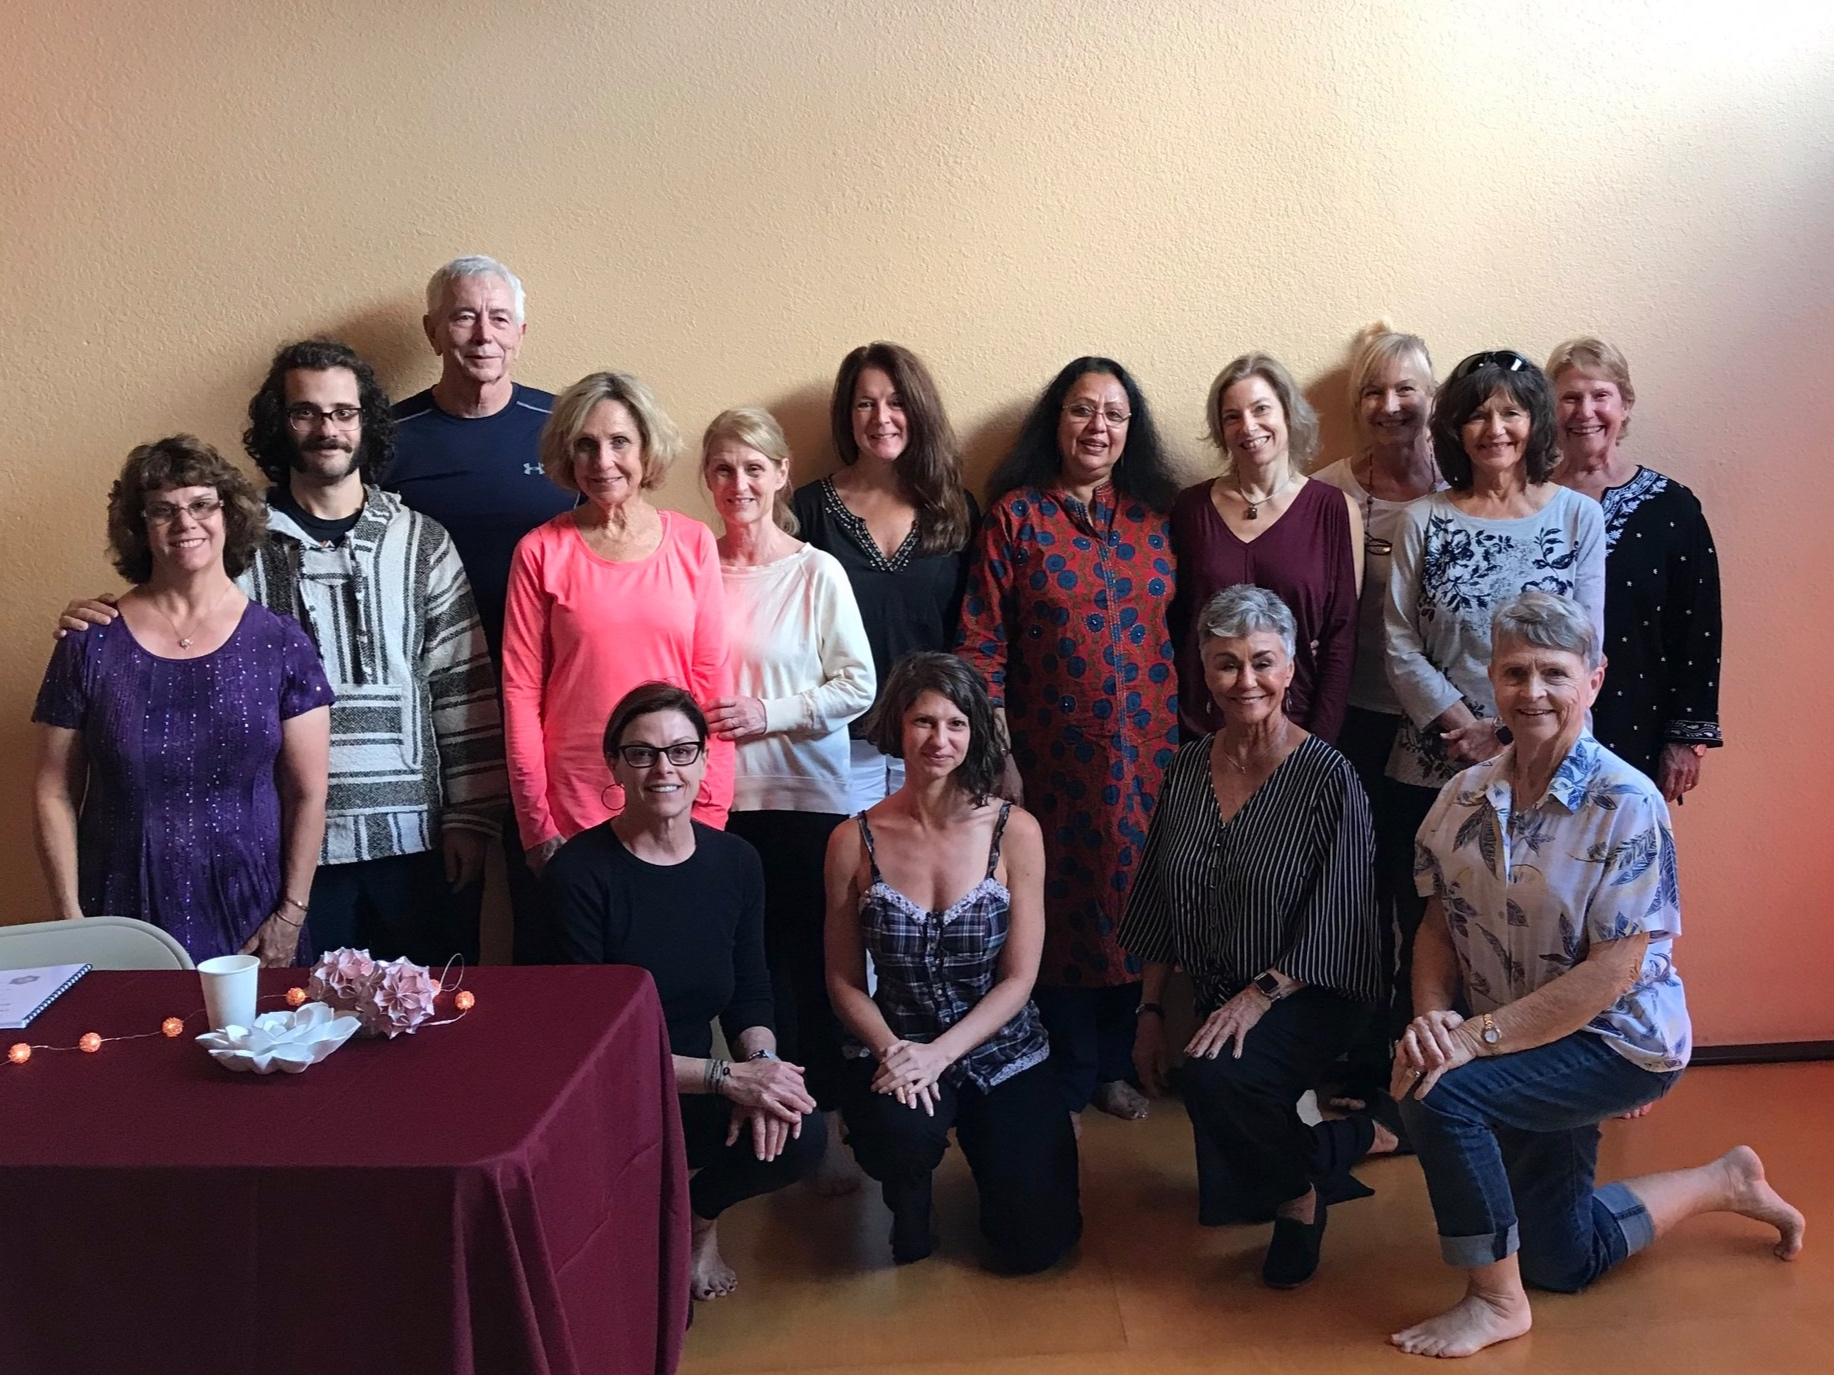 Creating Harmony in Every Relationship Workshop in Lakeland, Florida in March, 2019.